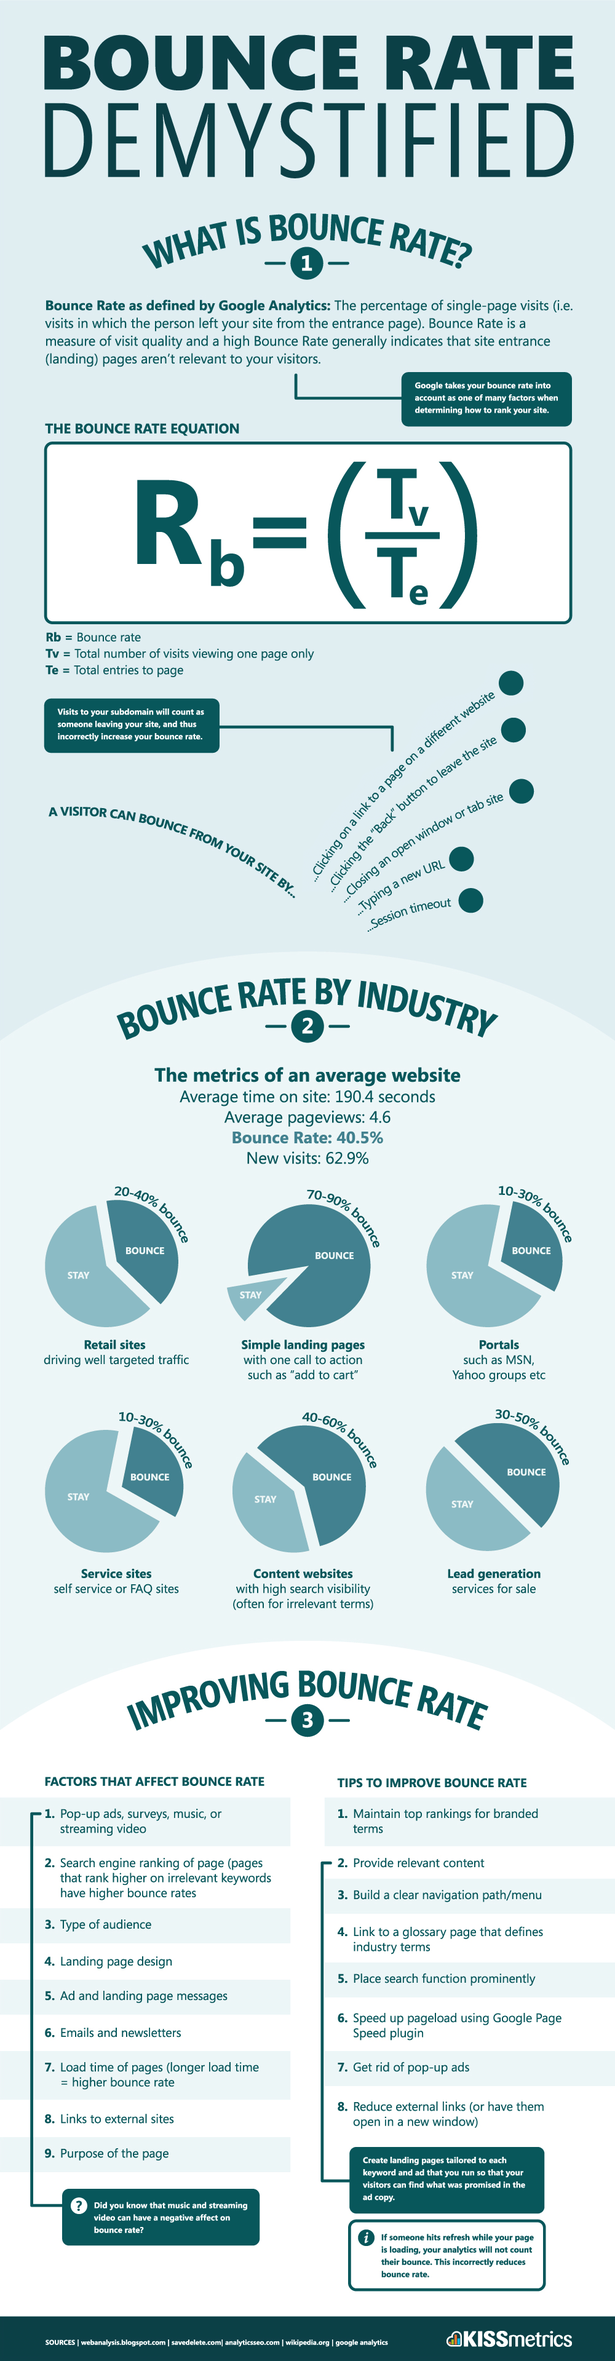 """Bounce Rate Demystified - in essence (short definition) this is """"time spent by visitors on your site"""" - critical variable to driving marketing ROI, leads and downstream revenue. #SEO #BounceRate #SEM"""